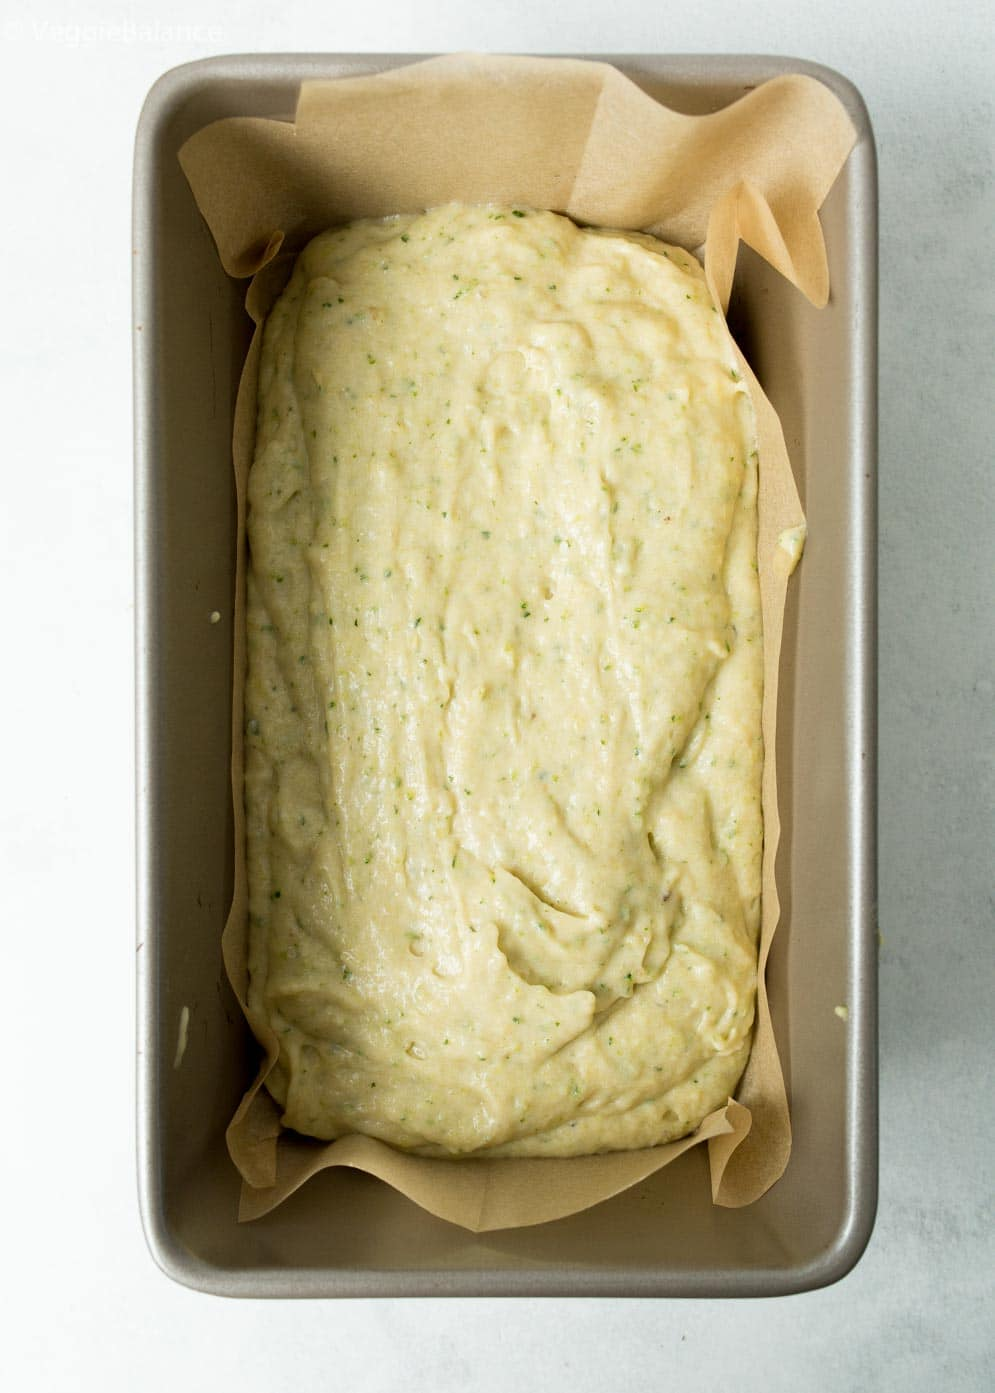 Vegan Gluten-Free Zucchini Bread Loaf Before Baking